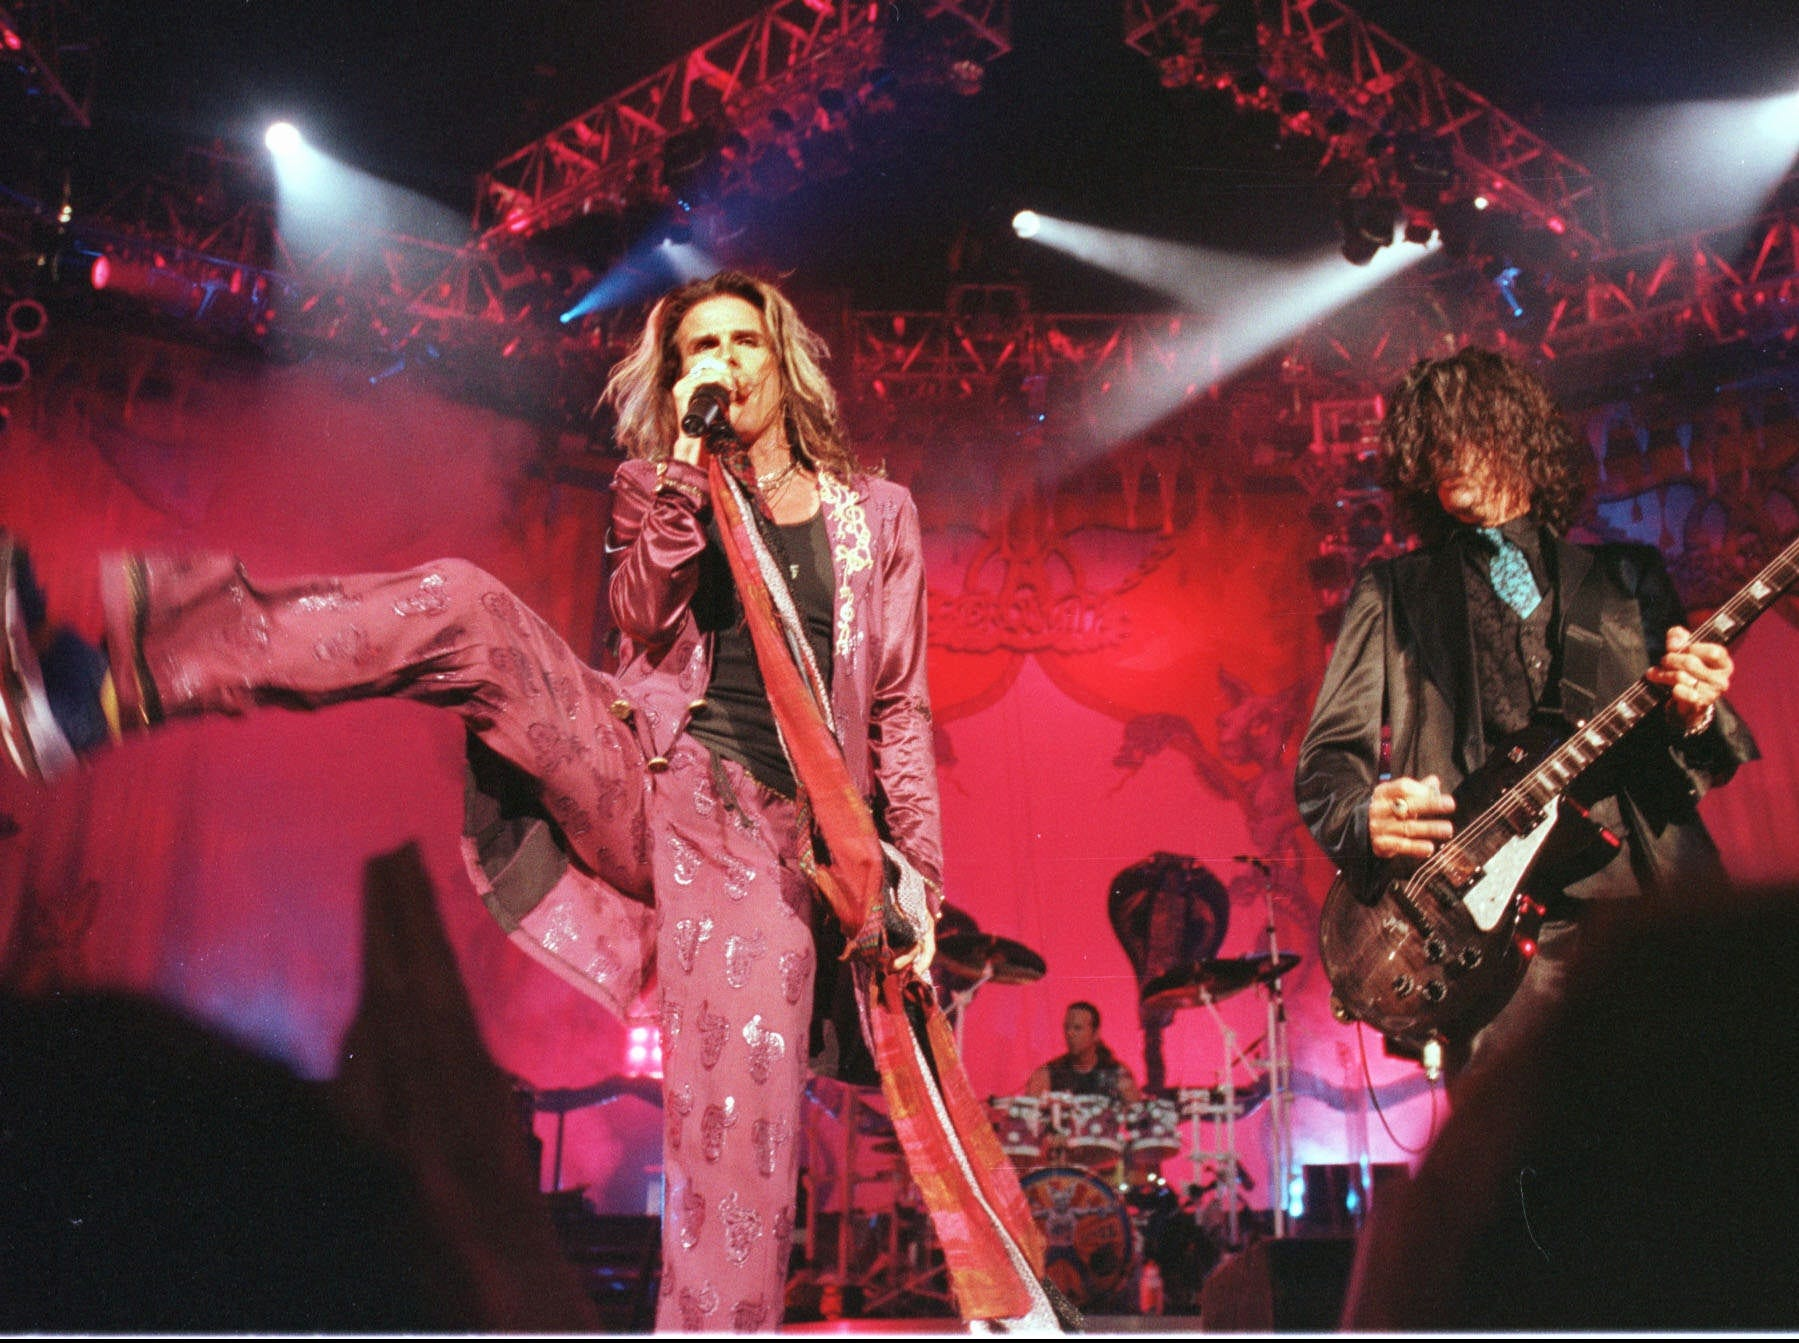 Steven Tyler lead singer (left) and guitarist Joe Perry of Aerosmith, perform at Deer Creek Music Center on Aug. 31, 1997.